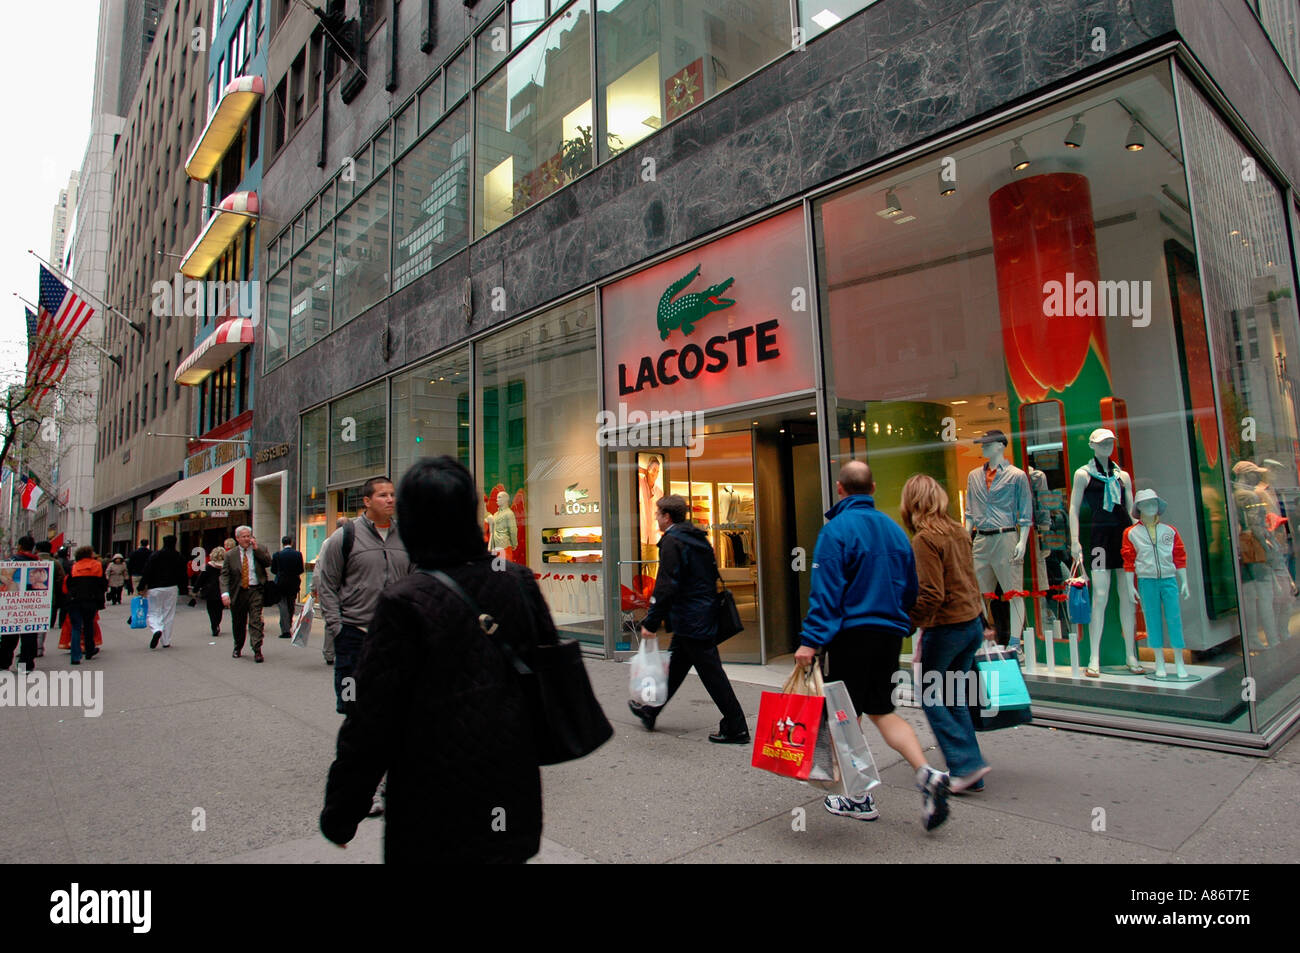 bcebac44a3fbbc Lacoste store on Fifth Avenue in New York City Stock Photo  3919997 ...